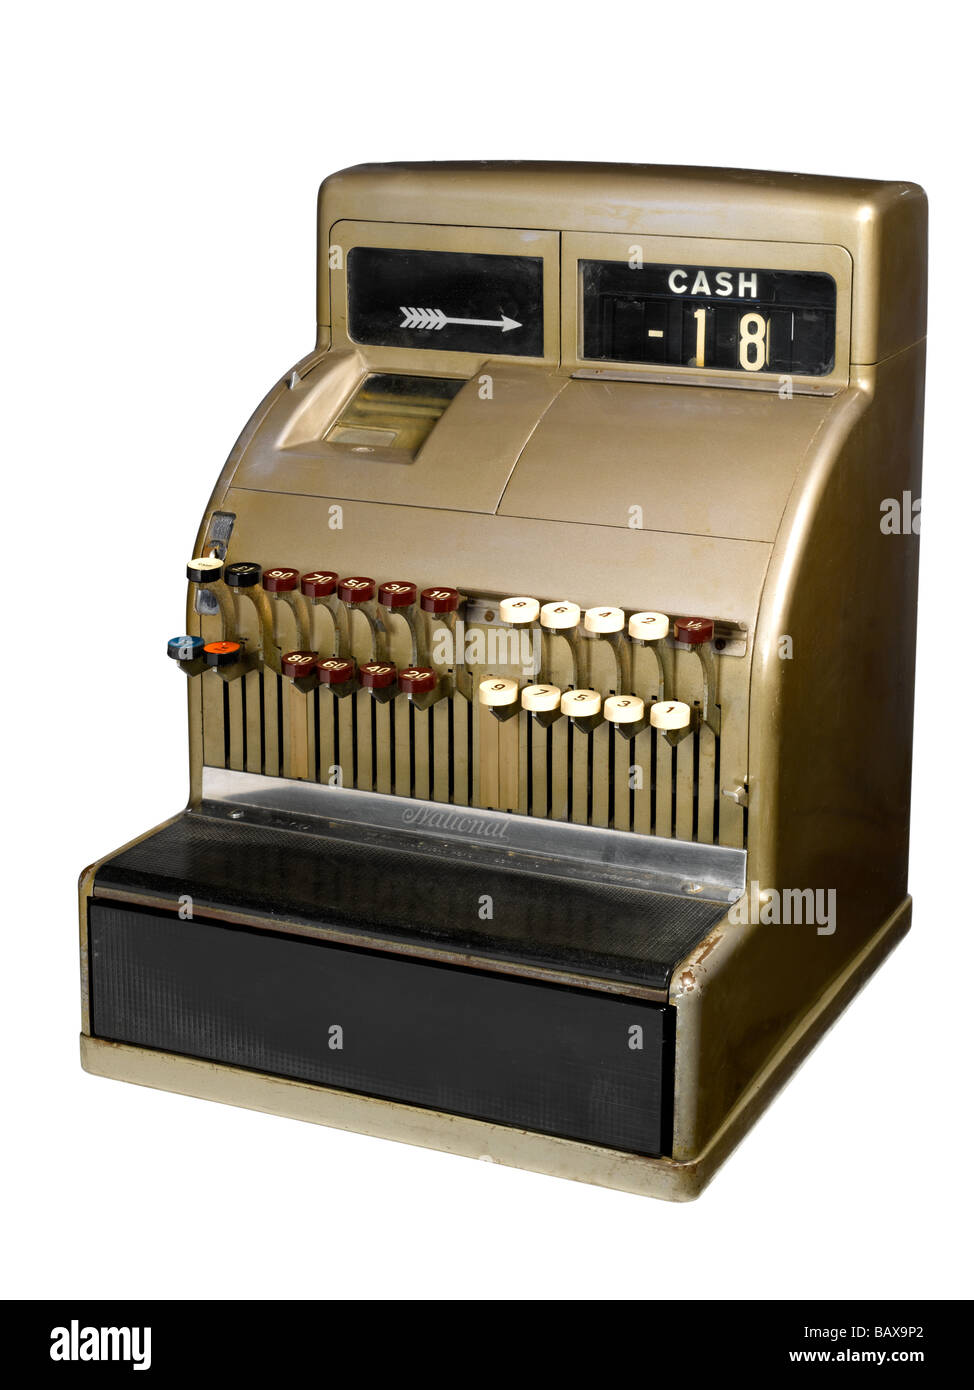 An old fashioned cash register - Stock Image